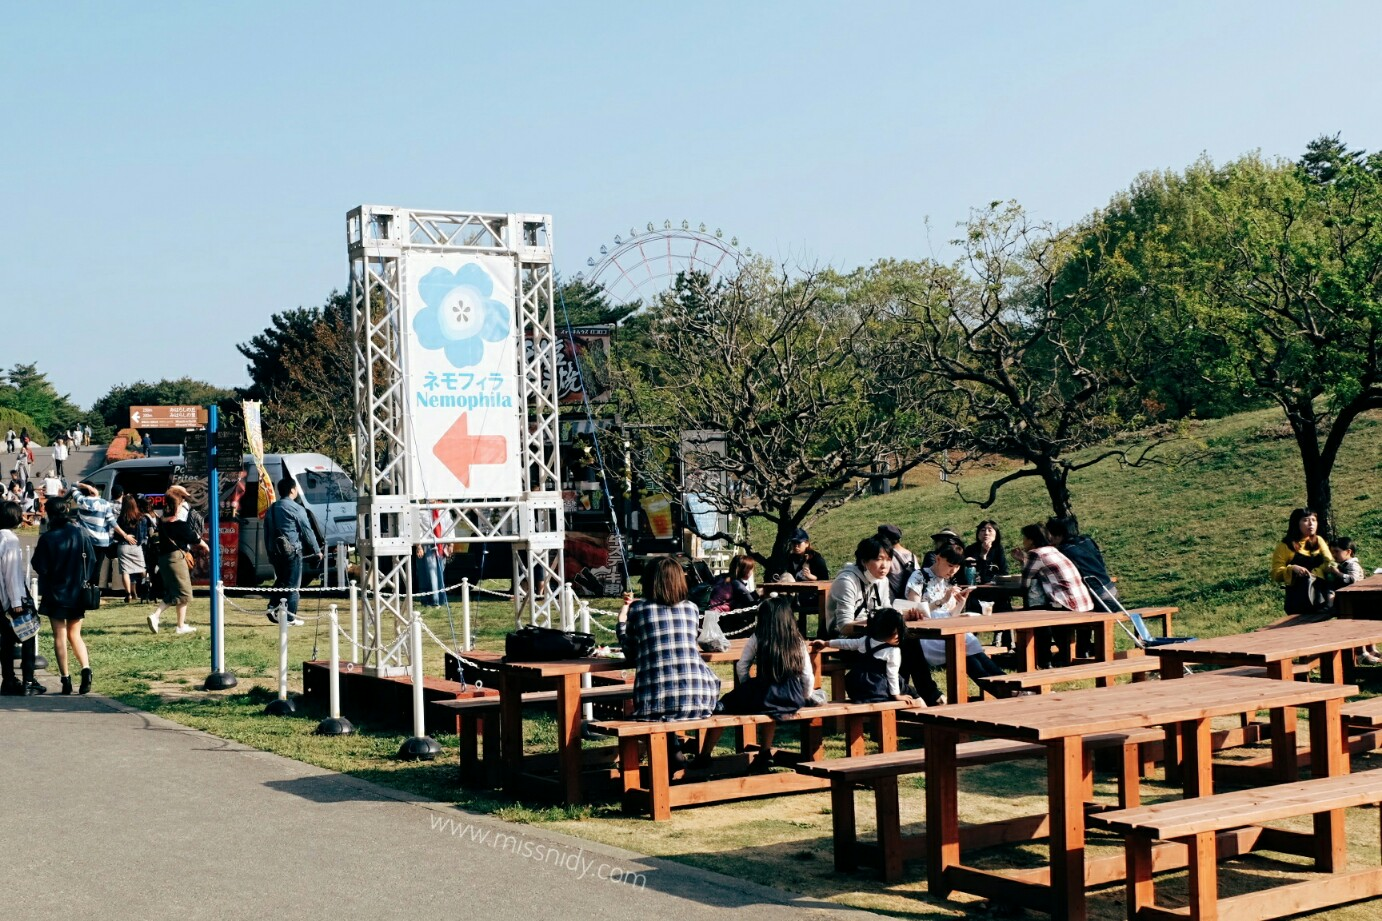 FACILITIES AT HITACHI SEASIDE PARK